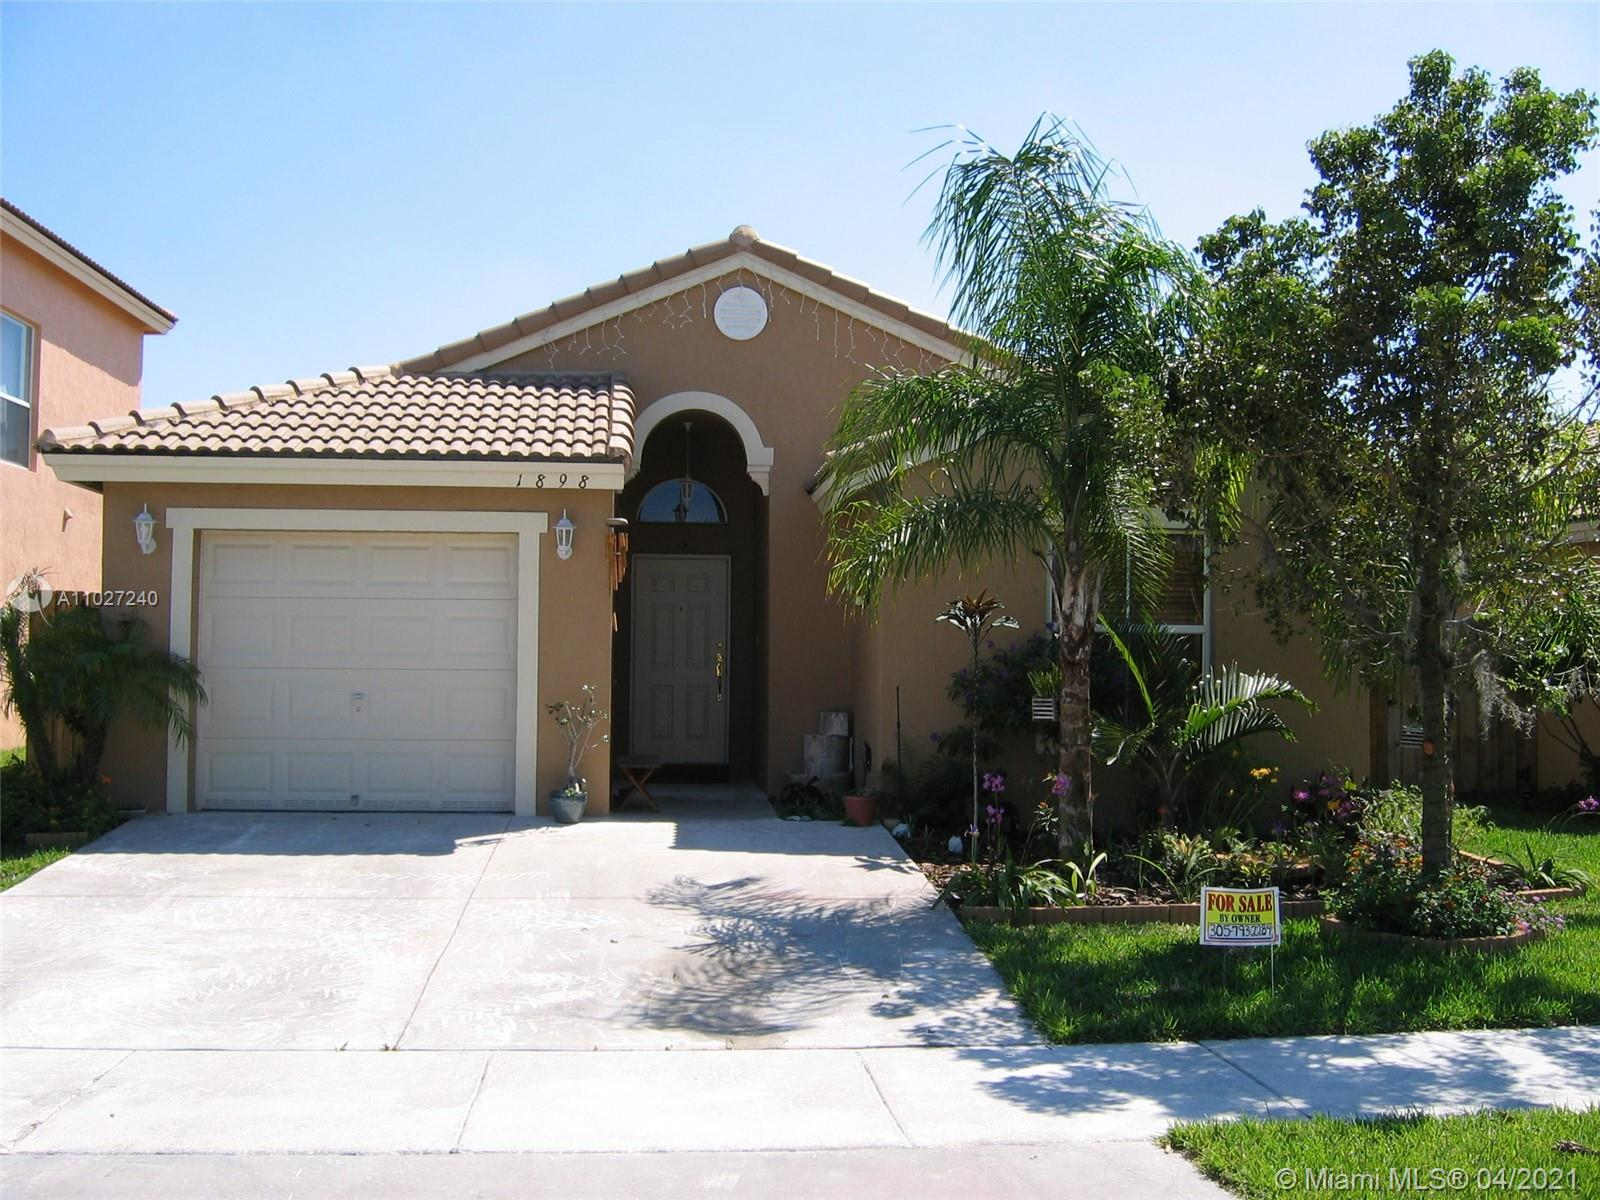 One story beauty in the gated community of Shores at Keys Gate!  This 3 bedroom, 2 bath, 1 car garage includes an open kitchen with granite , tiled living areas and carpet in bedrooms, and wood fenced in backyard perfect for entertaining.  Community includes: guard at gate, 24 hour roving security, tennis and racquetball courts, AT&T cable and internet, alarm monitoring and common area maintenance.  Tenant occupied.  advanced appointment required.